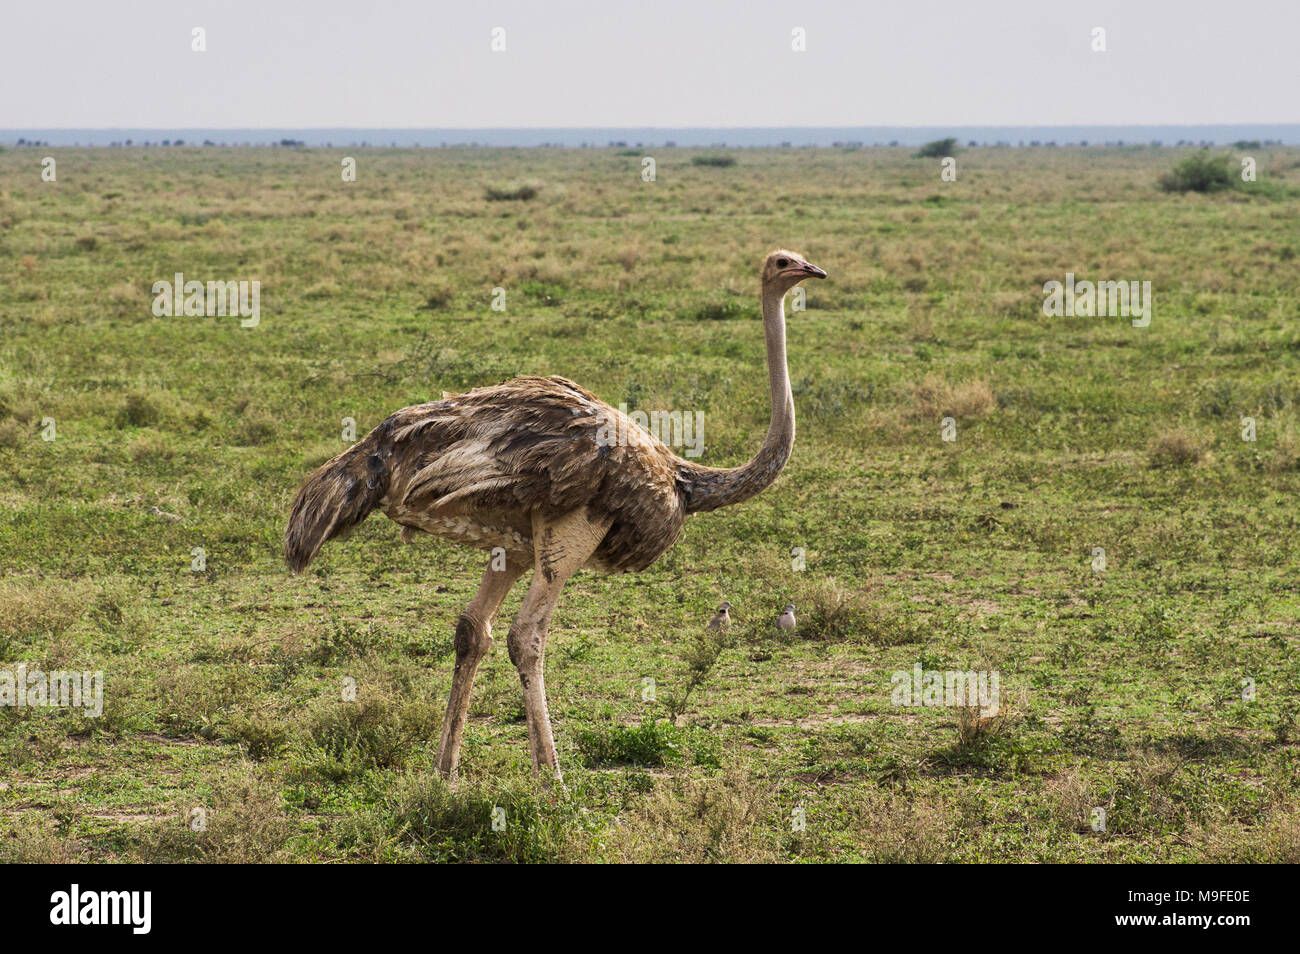 A lone femail ostrich on the plains of the Serengeti in Northern Tanzania, Africa on a sunny day with blue skies - Stock Image